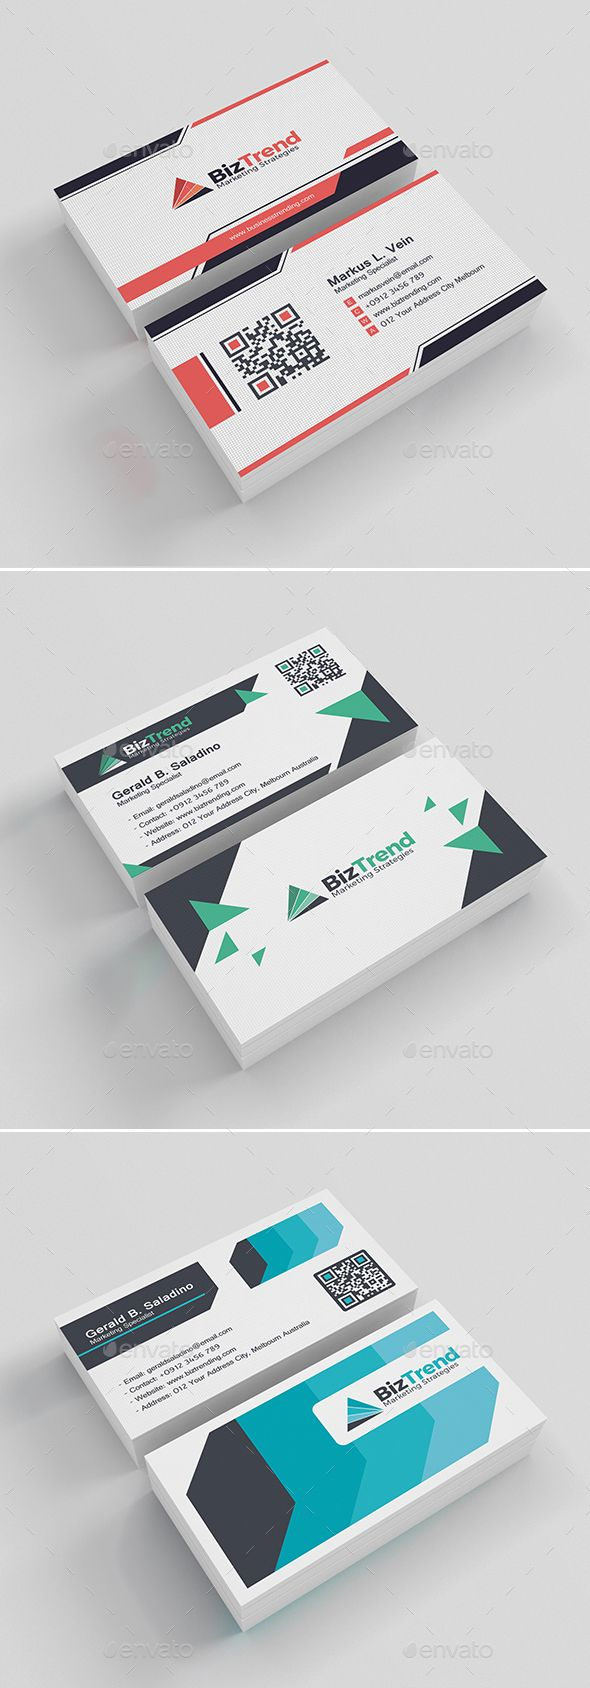 3 In 1 Business Card Bundle V 4 Company Business Cards Printing Business Cards Make Business Cards